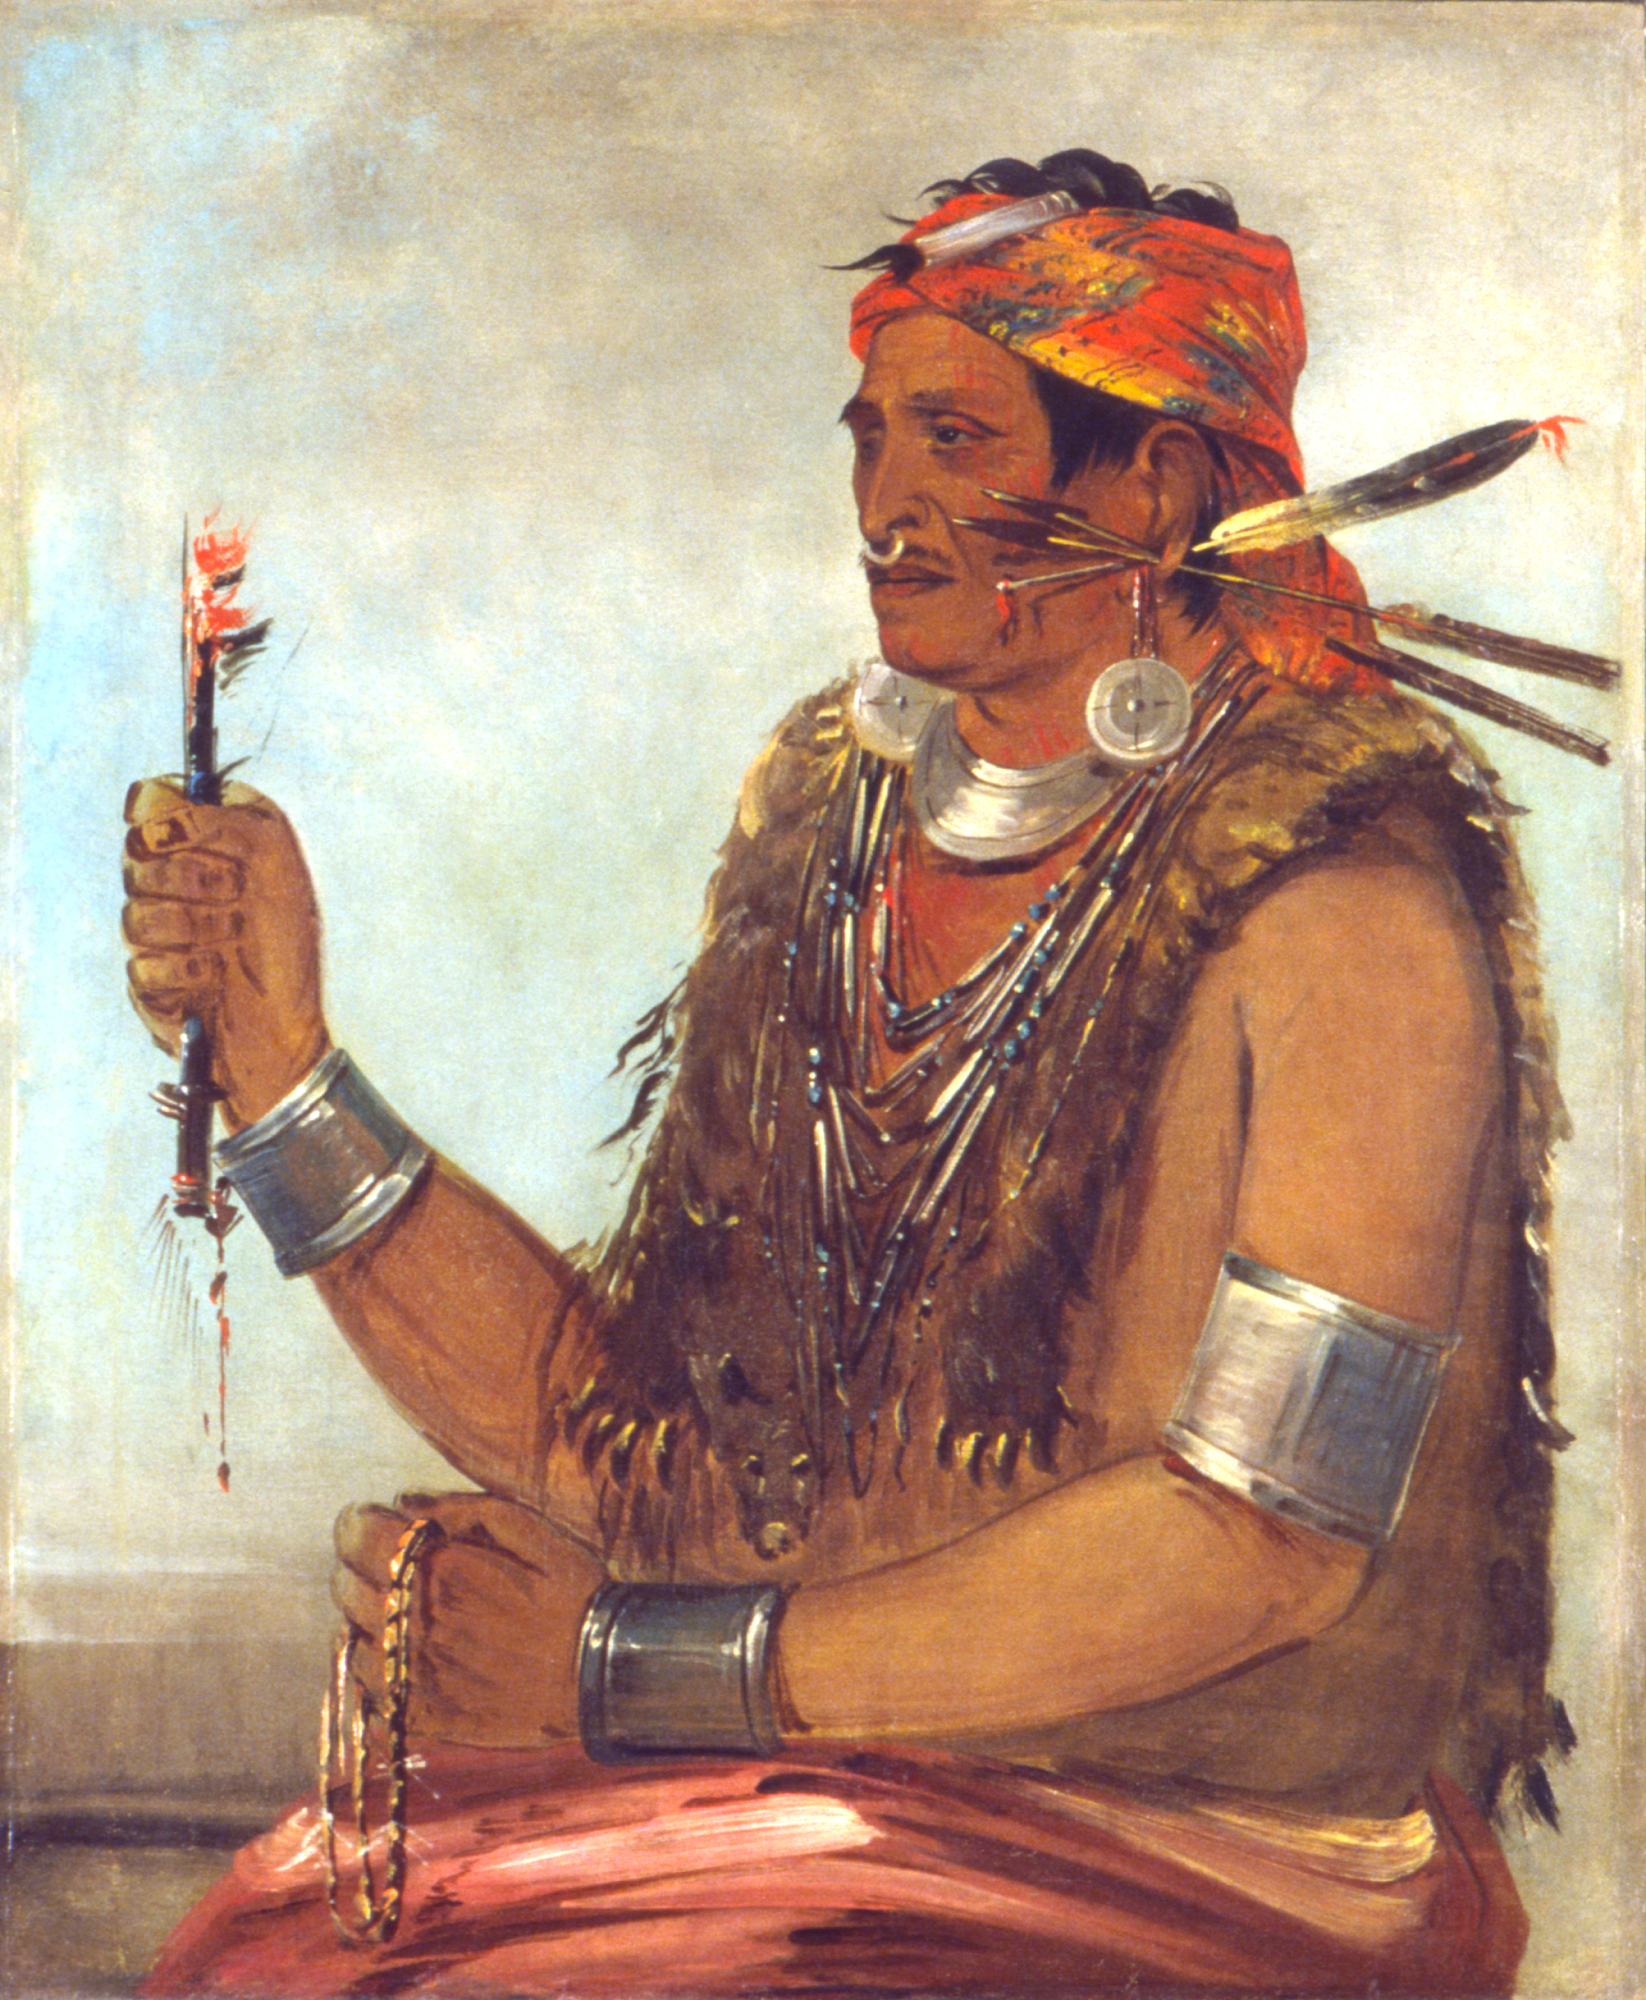 George Catlin,  Ten-sqúat-a-way, The Open Door, Known as The Prophet, Brother of Tecumseh,  1830, oil on canvas, Smithsonian American Art Museum, Gift of Mrs. Joseph Harrison, Jr., 1985.66.279.